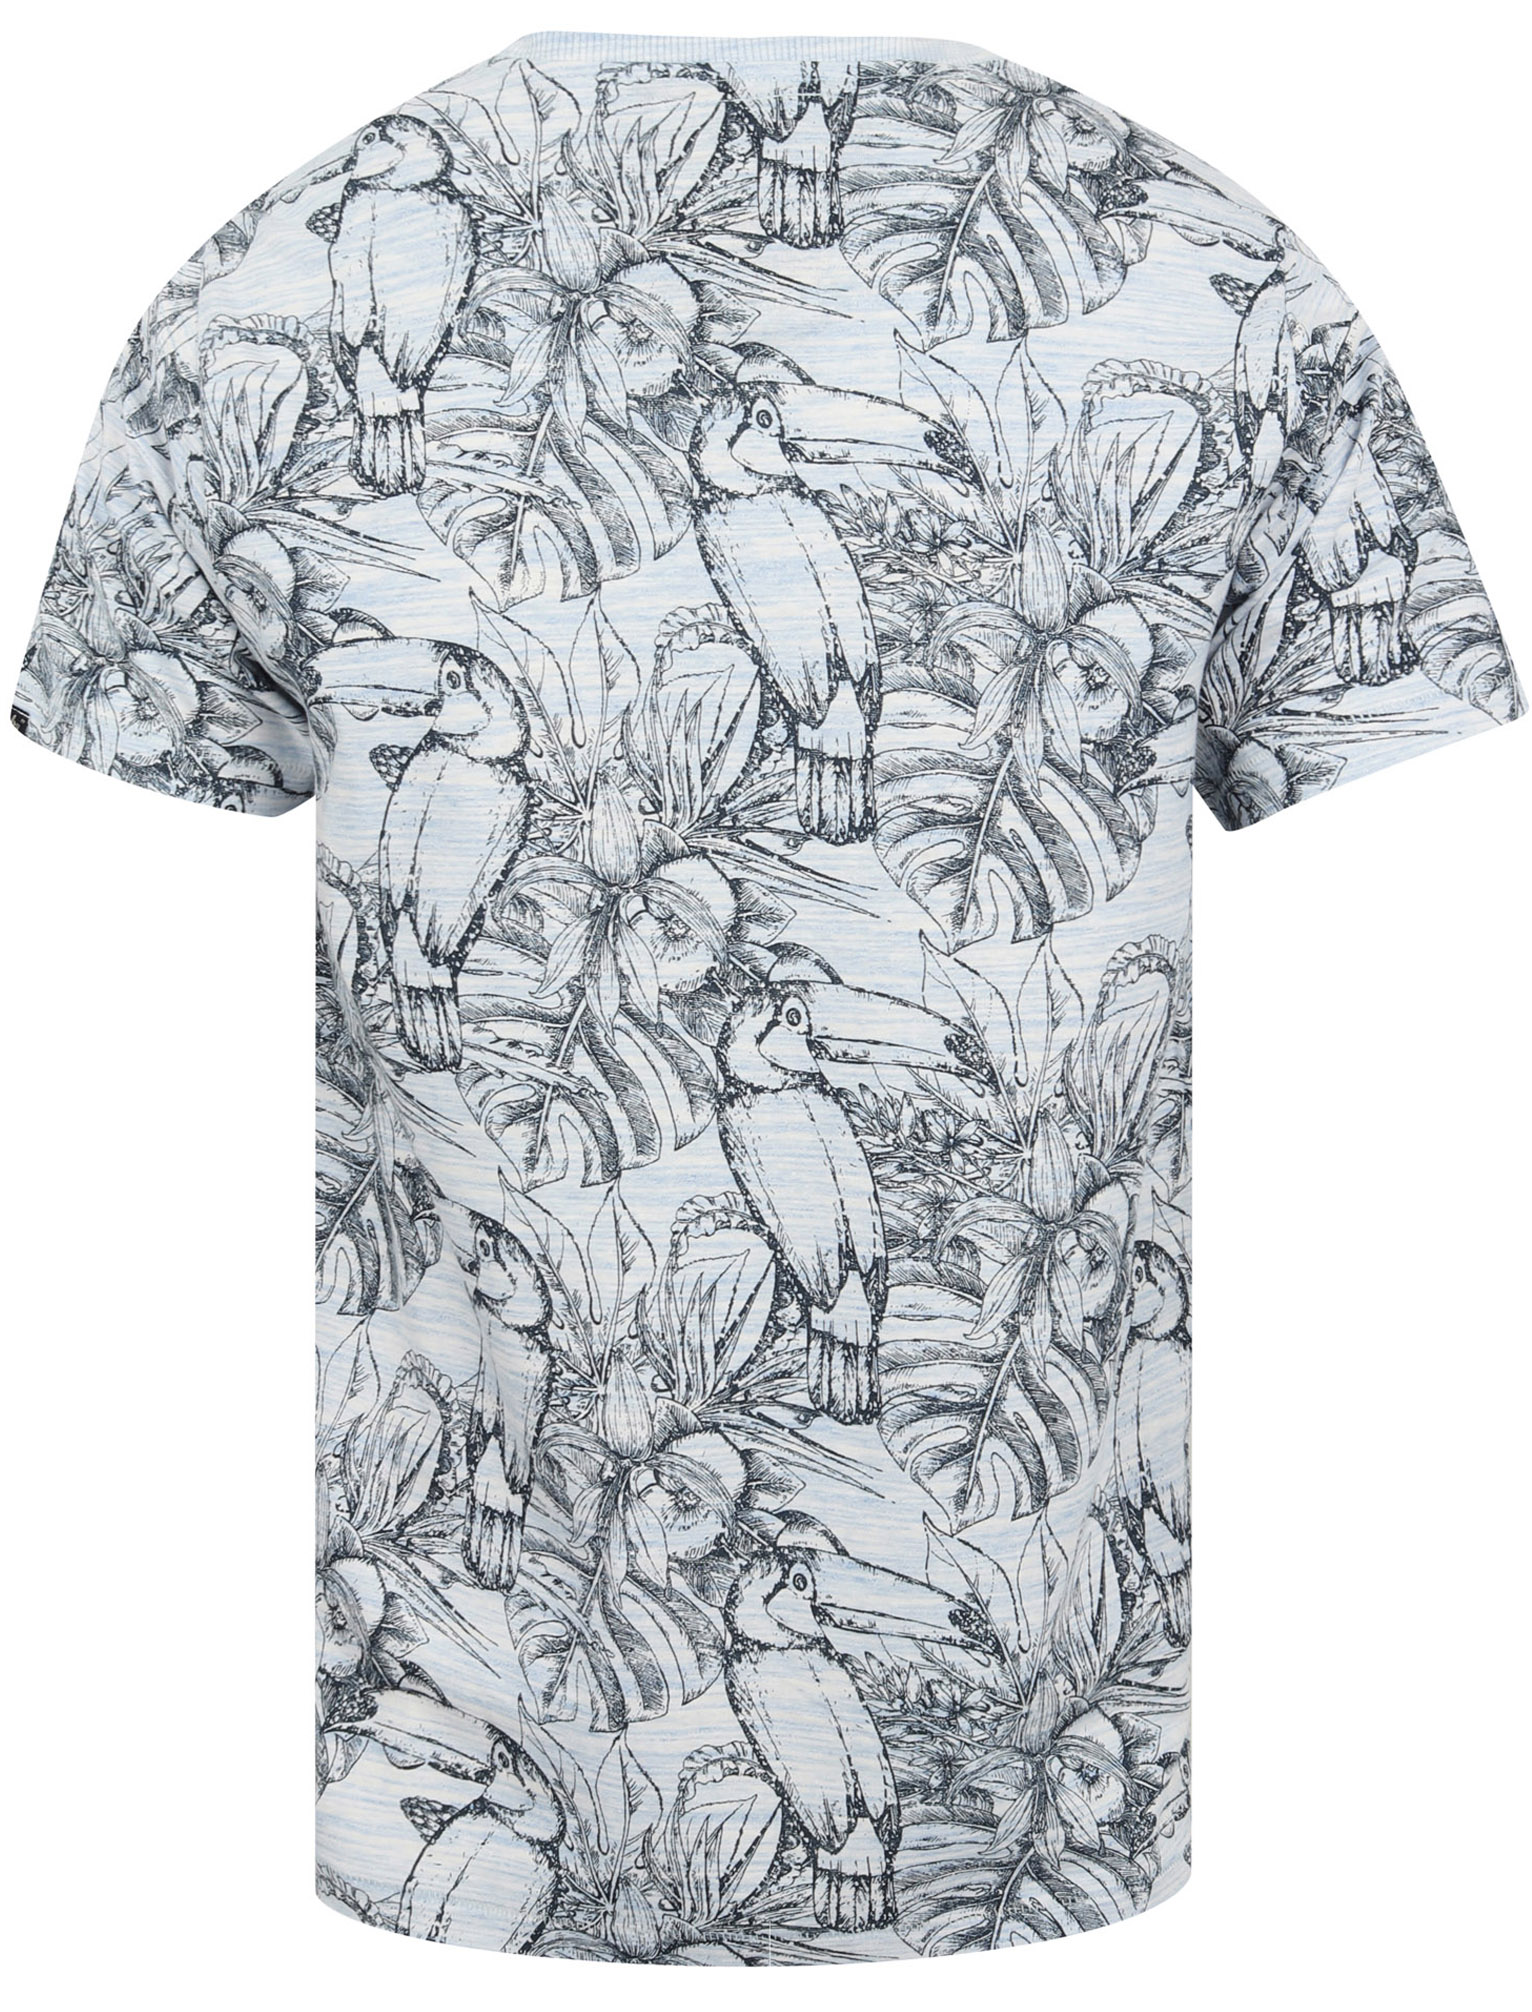 Tokyo-Laundry-Tropical-Print-Crew-Neck-T-Shirt-Hawaiian-Floral-Summer-Holiday thumbnail 9